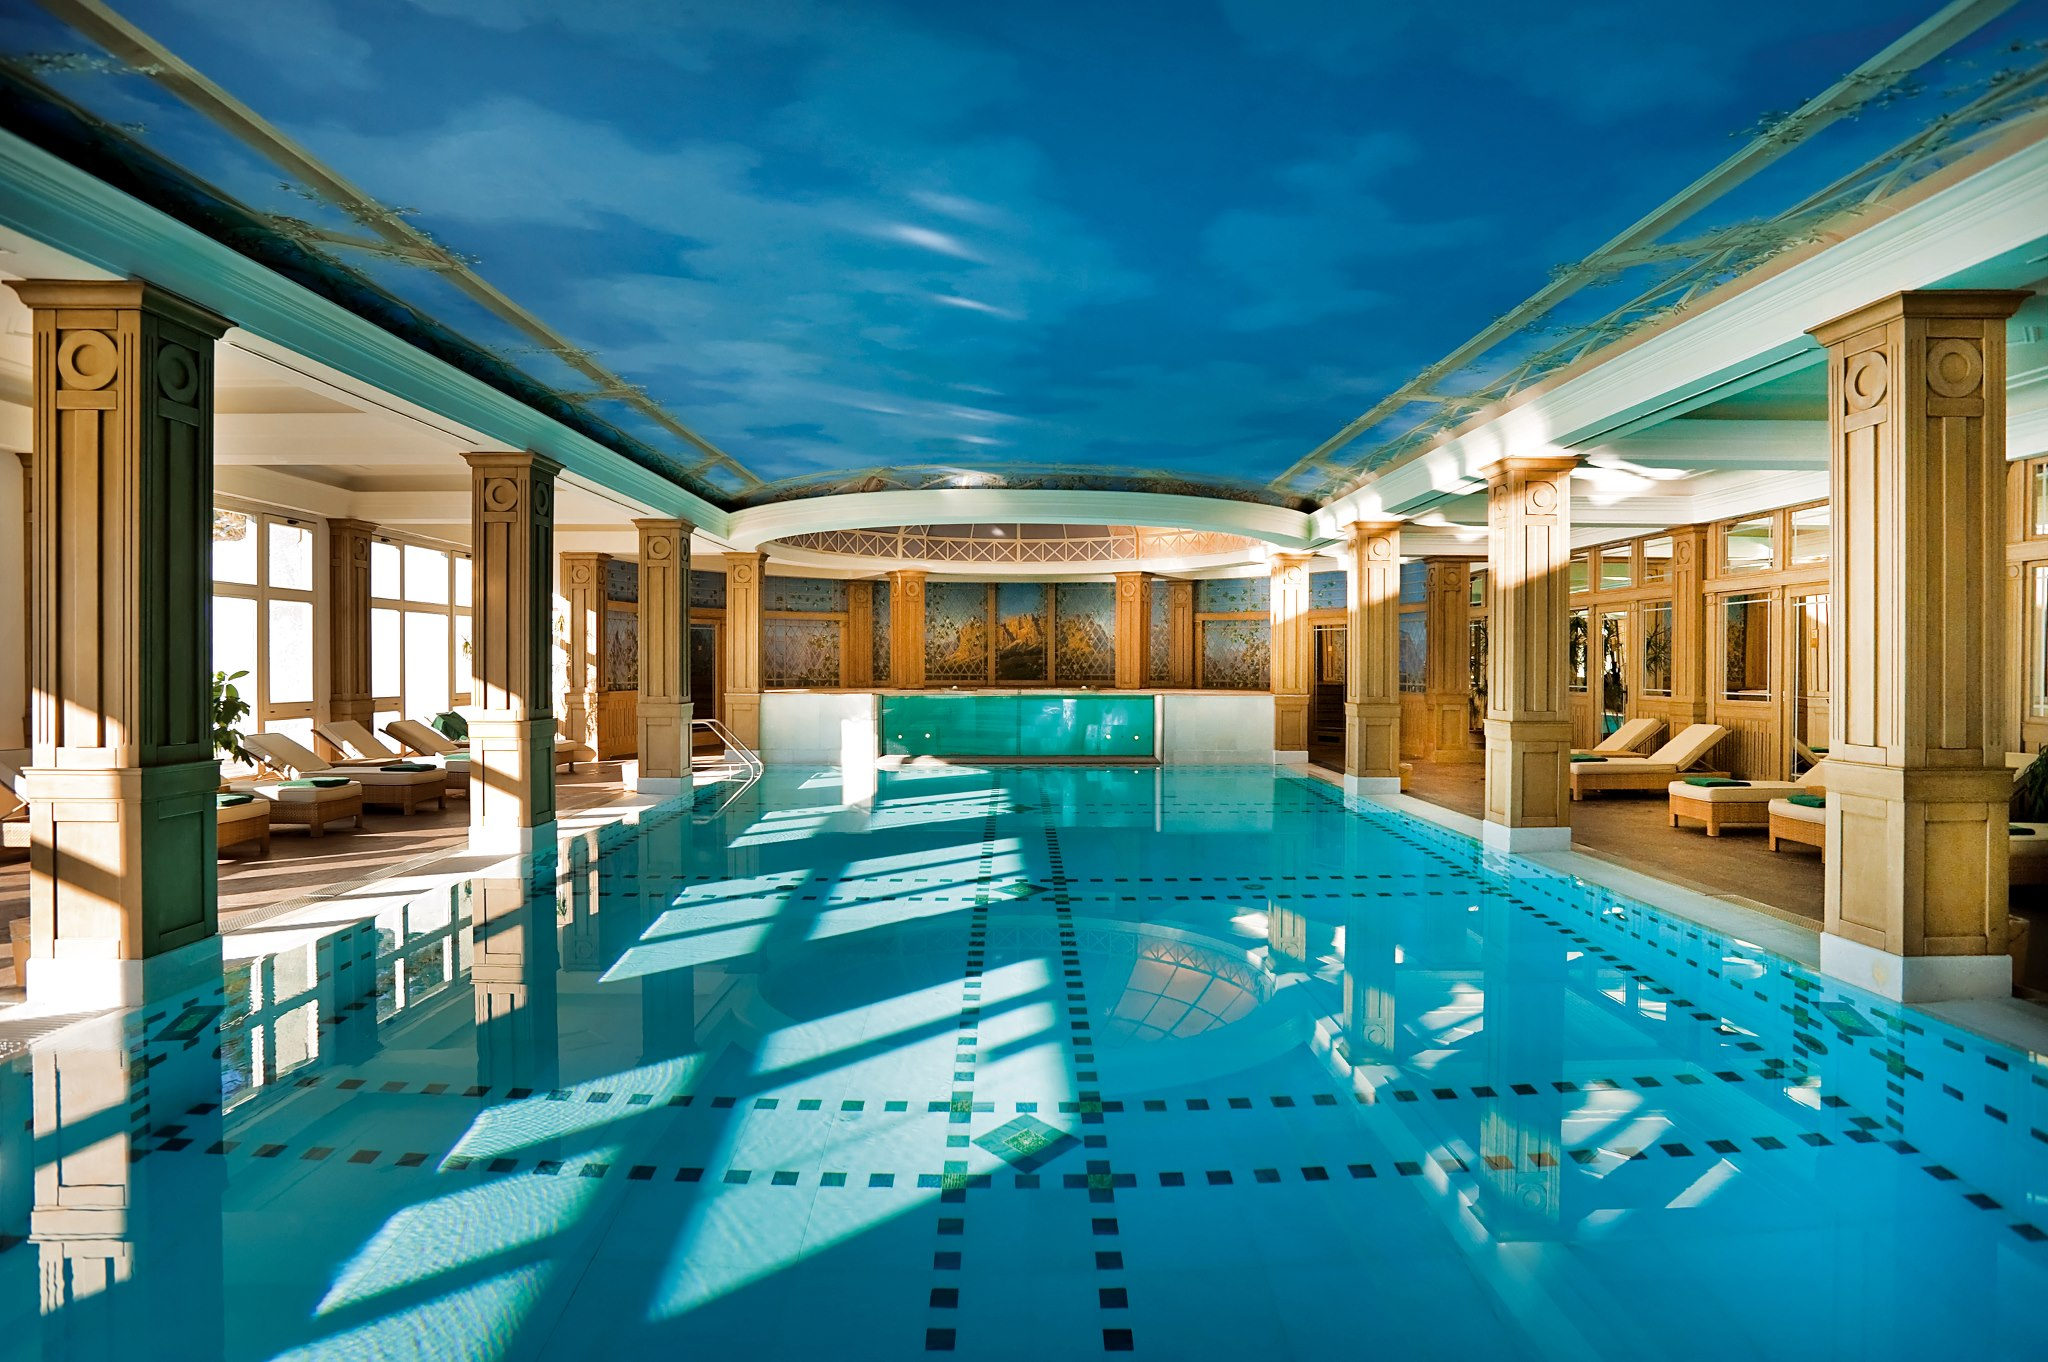 Cristallo Palace Hotel and Spa Indoor Pool